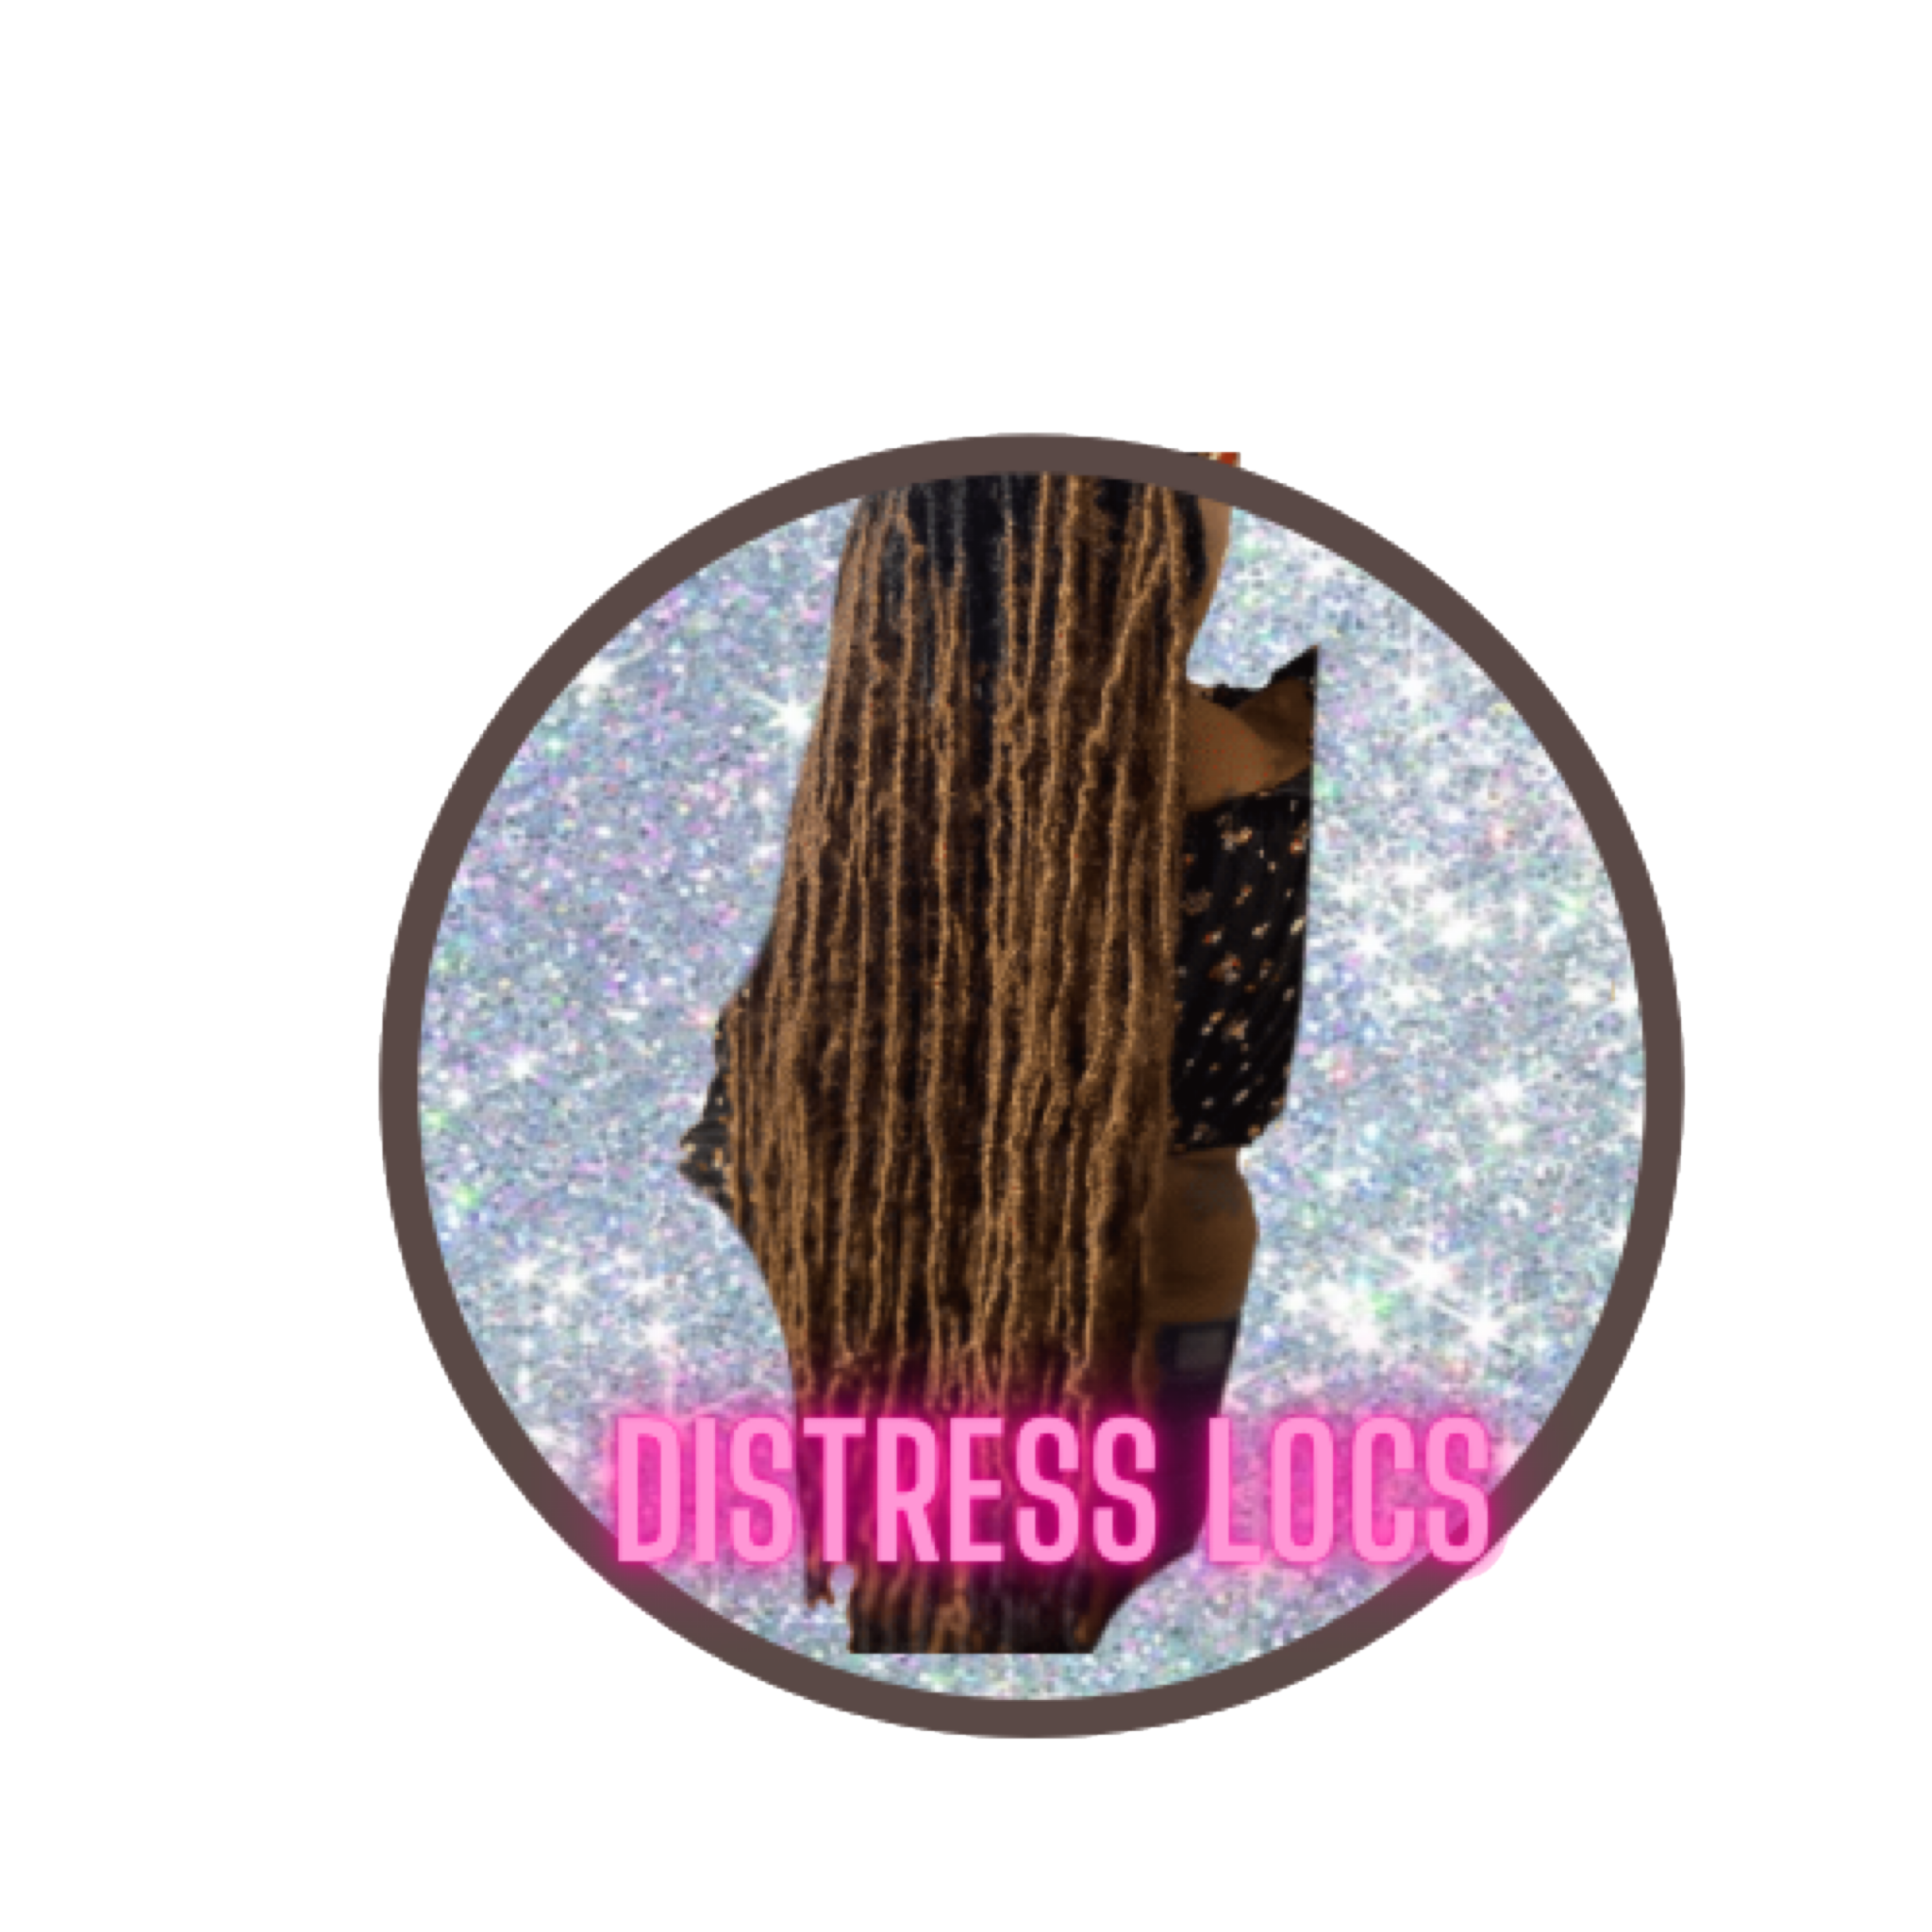 DISTRESS LOCS